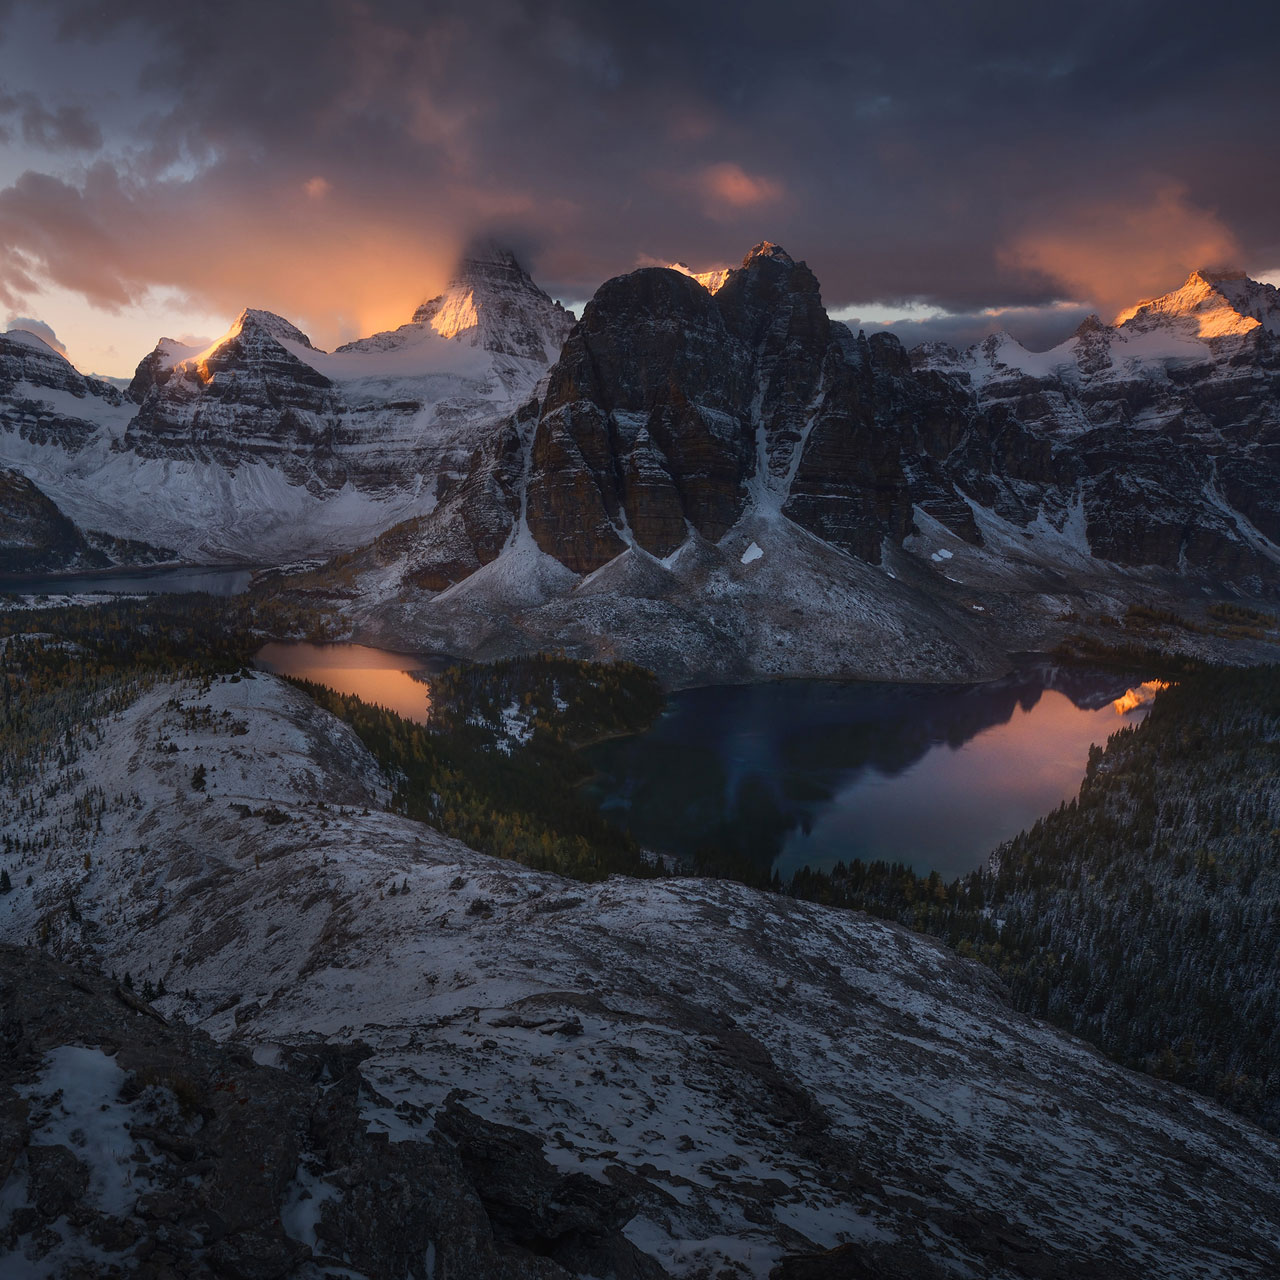 enrico fossati crowned by fire